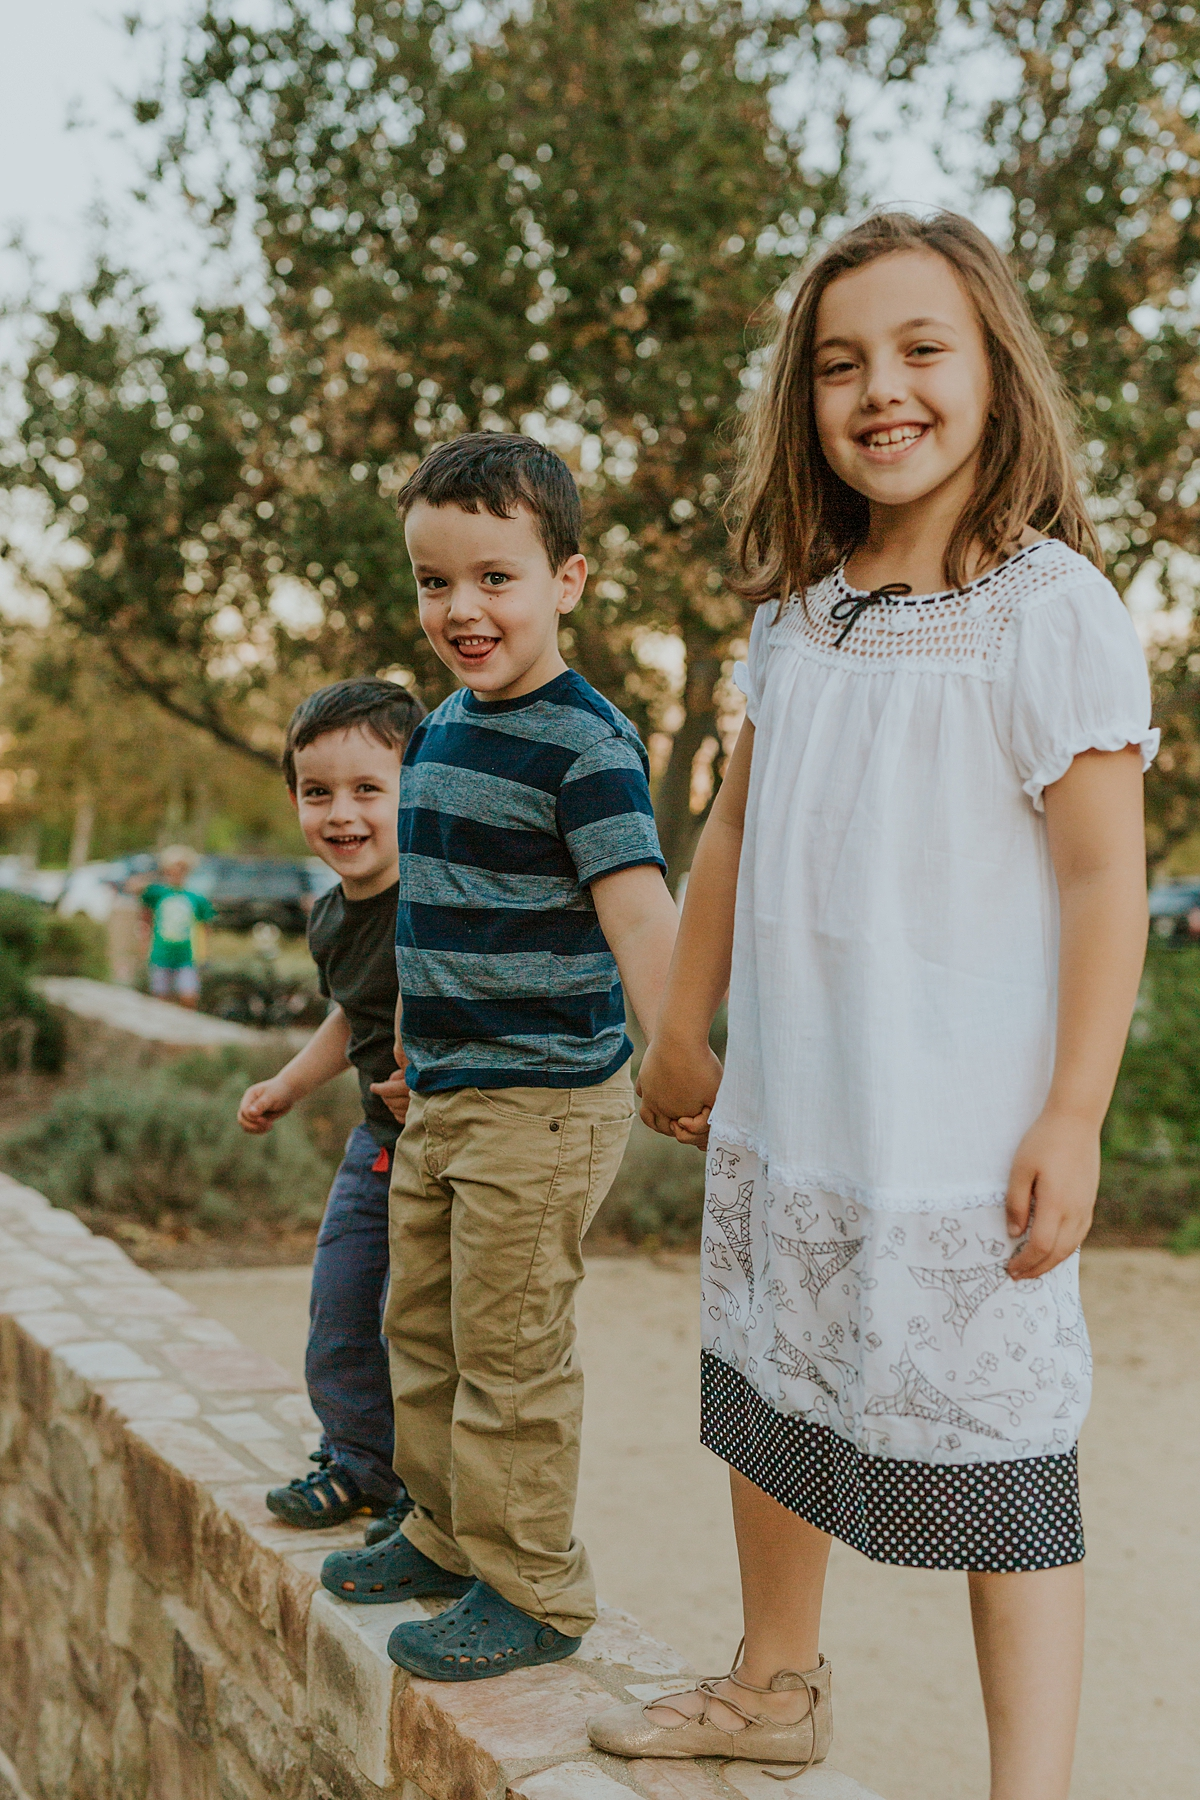 Orange County family photographer. photo of siblings hand-in-hand standing on stone a wall during family photo shoot at Quail Hill with Krystil McDowall Photography